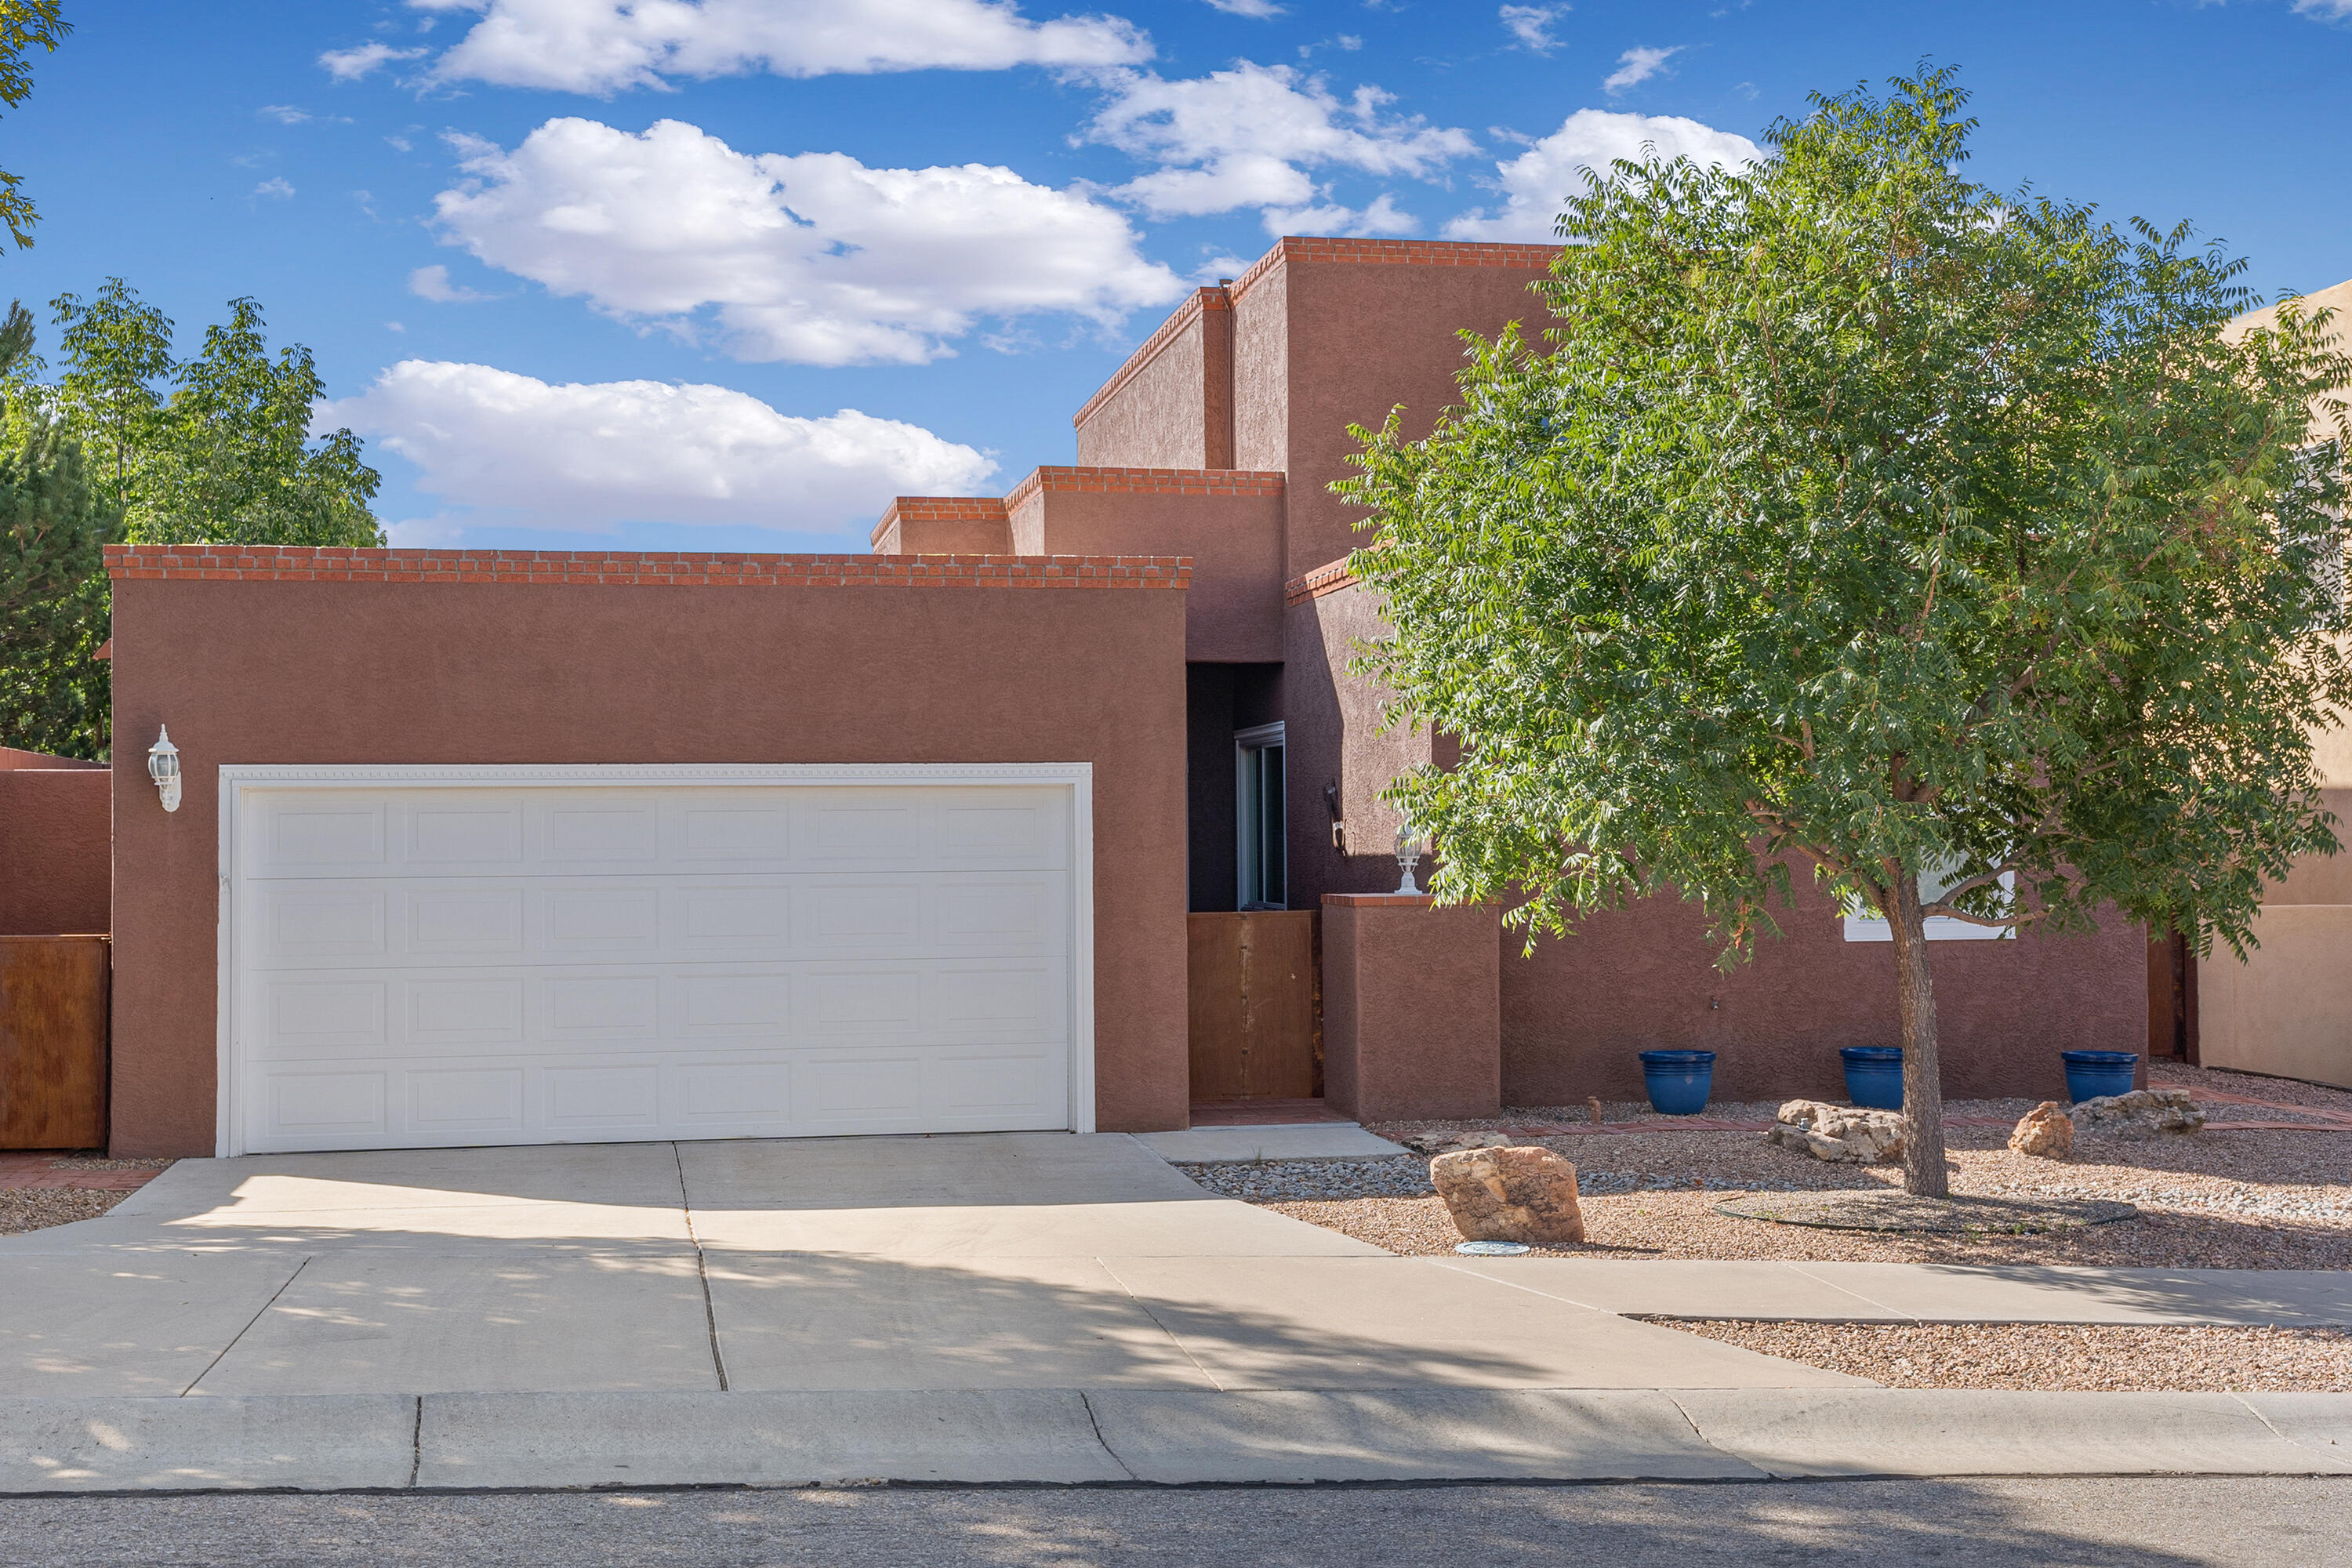 Price reflects $248,000 in upgrades in the past 7 months! Seller has invested in upgrading & improving this home with the best of the best. This property is exclusive and exquisite. Upgrades include: New (TPO ROOF) 50 year industrial grade 80mil TPO Carlise Syntec roof system. New (PAID SOLAR) 30 year low profile solar array not visible from ground level provides enough energy to waive off future energy bills -- $4000 to $5000 annual savings. New (SWIM SPA) premier Marque aquatic training vessel for endless swimming with a number of other aquatic fitness features. New (HOT TUB) premier Marque seven seat therapeutic spa. See MLS Features & Updates List for a full list of many more updates. 3 minutes from Intel & easy access to shopping, restaurants, schools, and major thoroughfares.